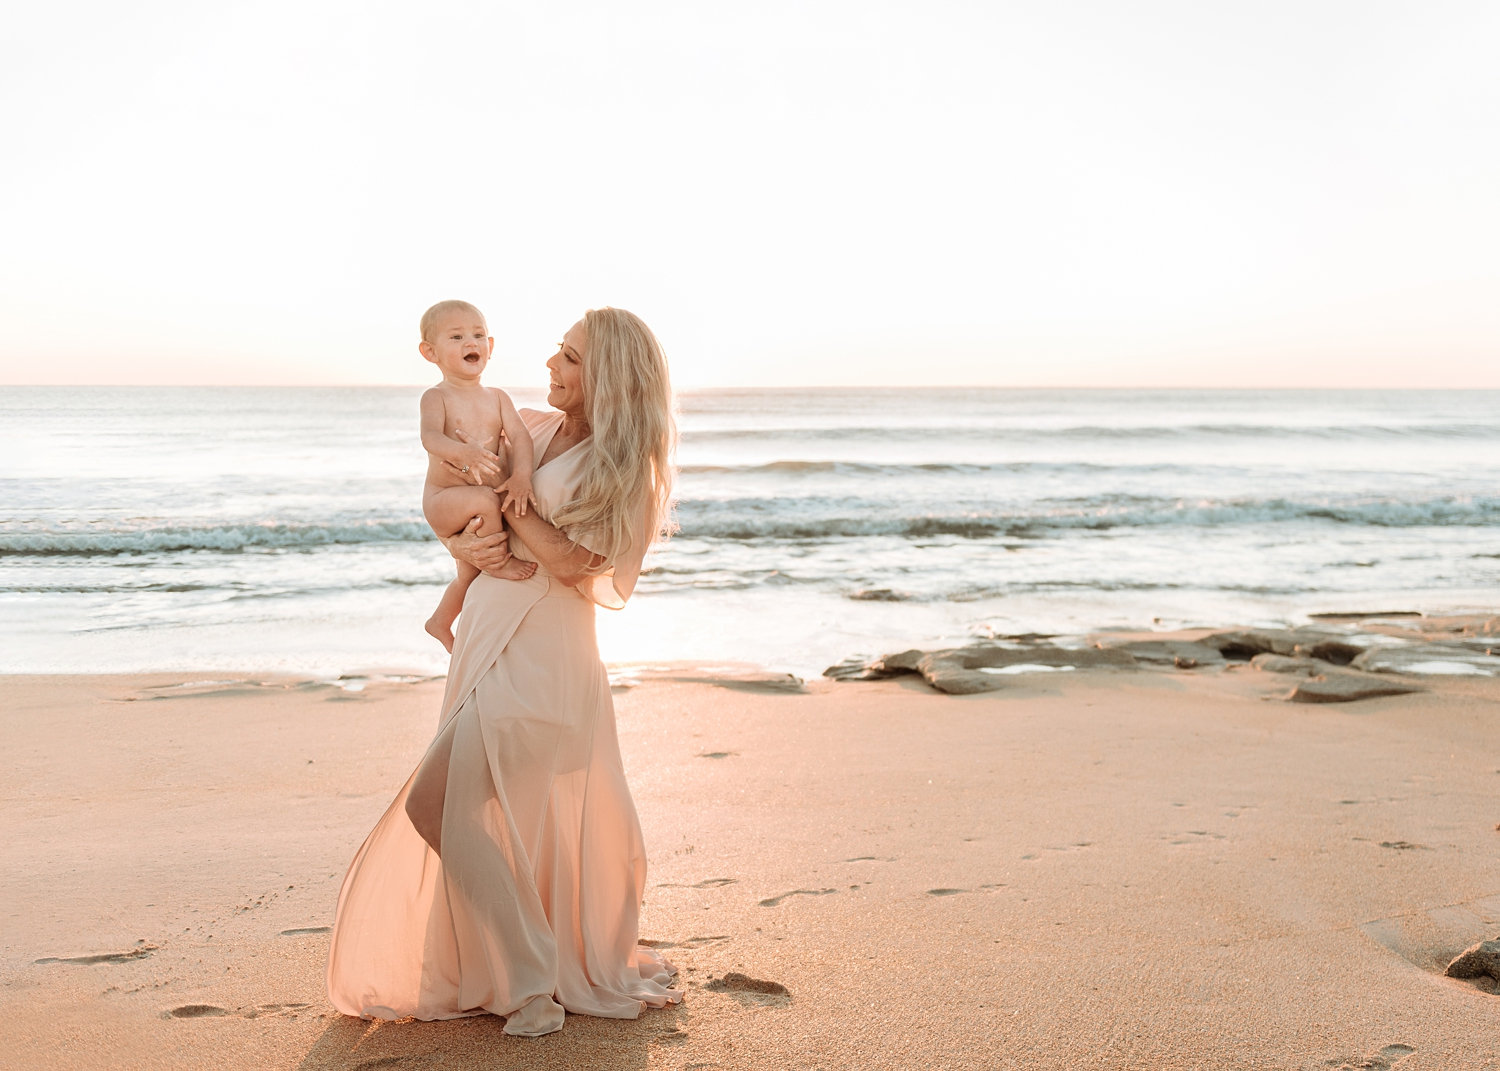 gorgeous blonde mother and baby boy dancing on the beach, Rya Duncklee